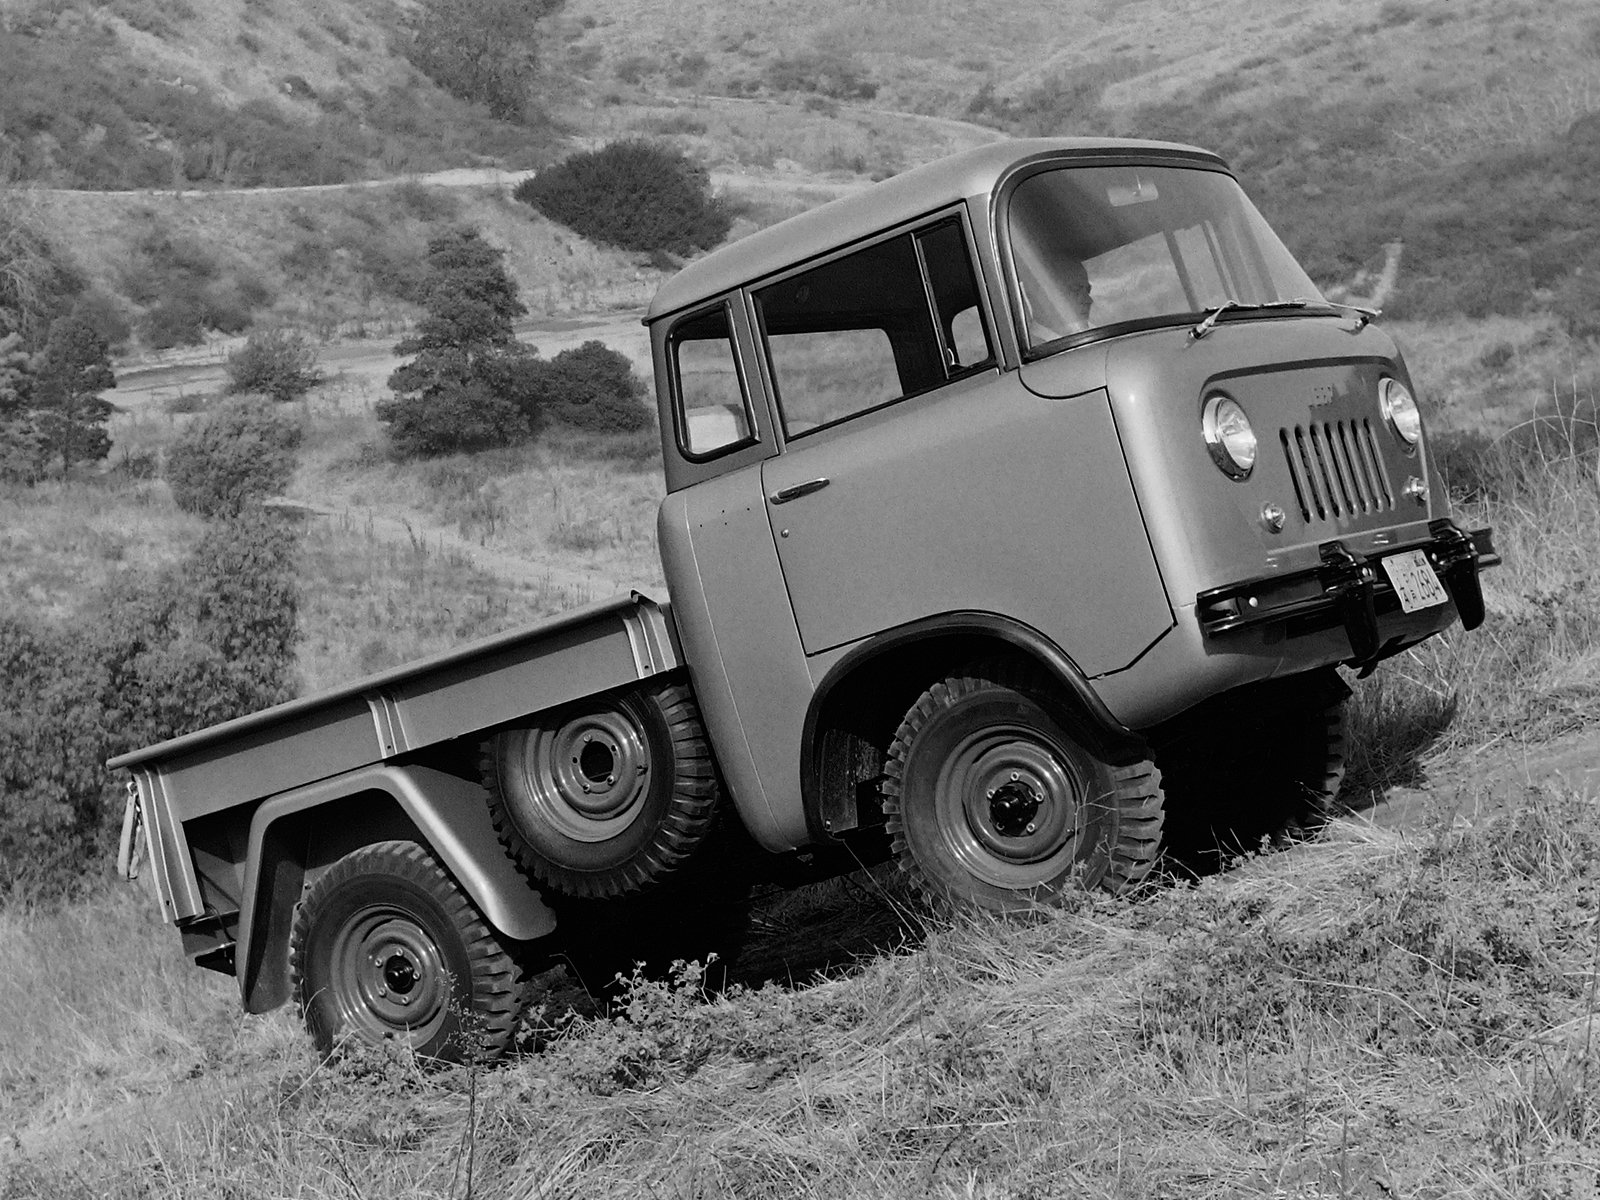 1957 Willys Jeep FC-150 4x4 pickup offrosd military (3)